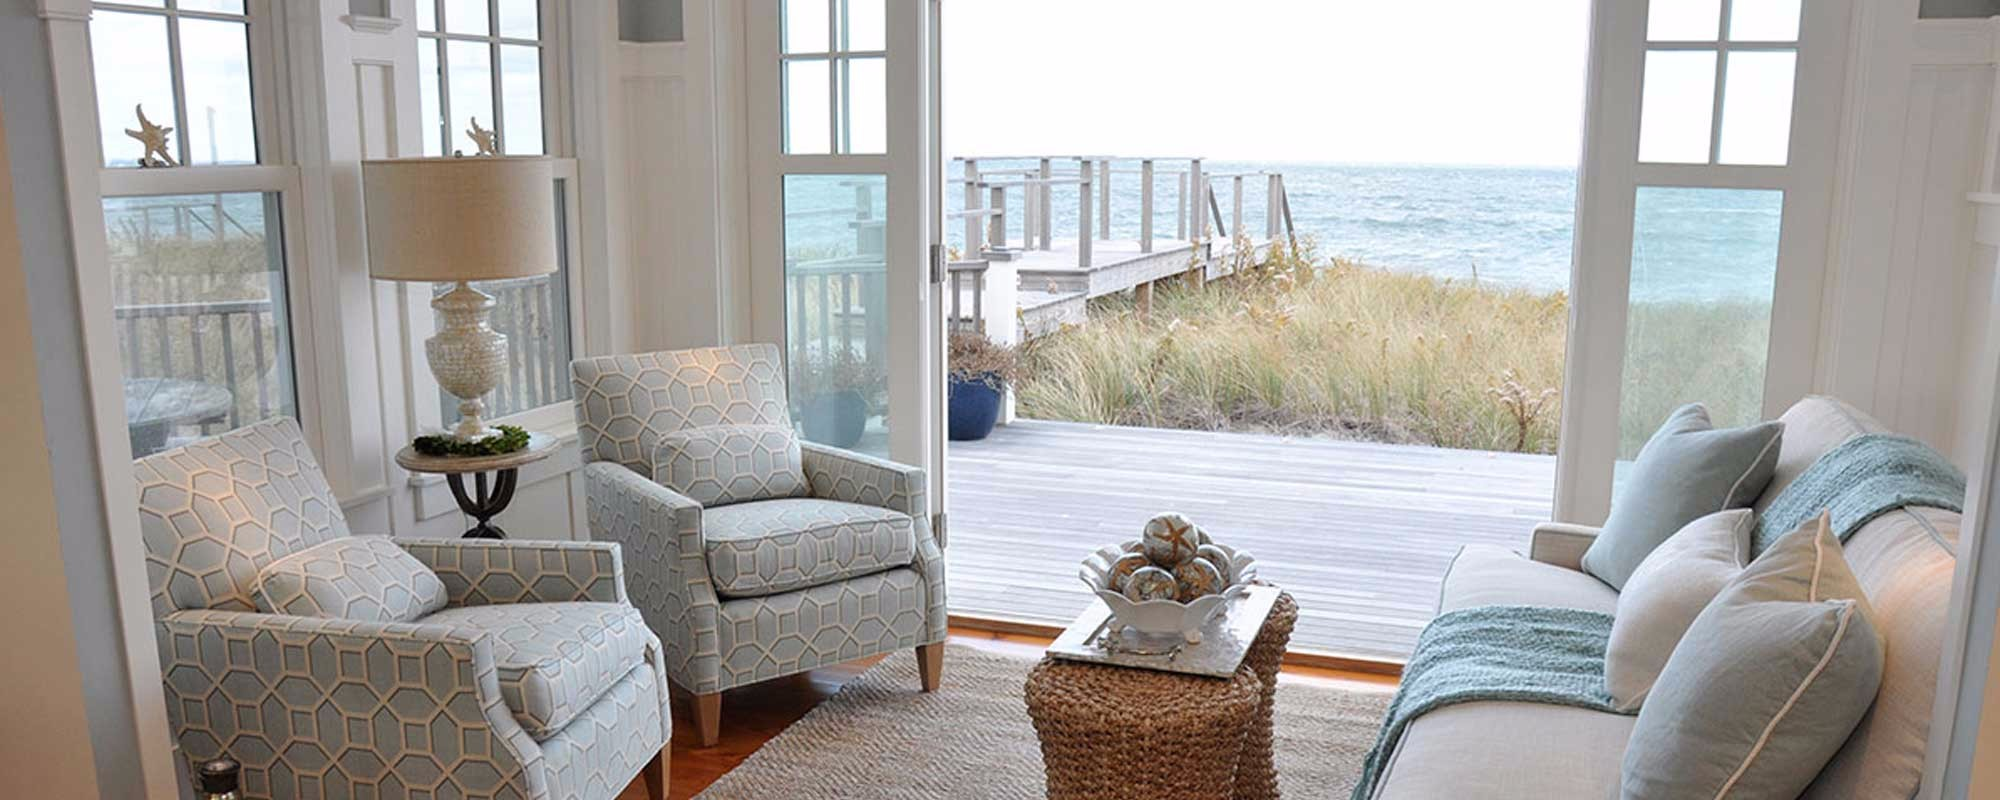 Interior Design Cape Cod MA - Casabella Interiors